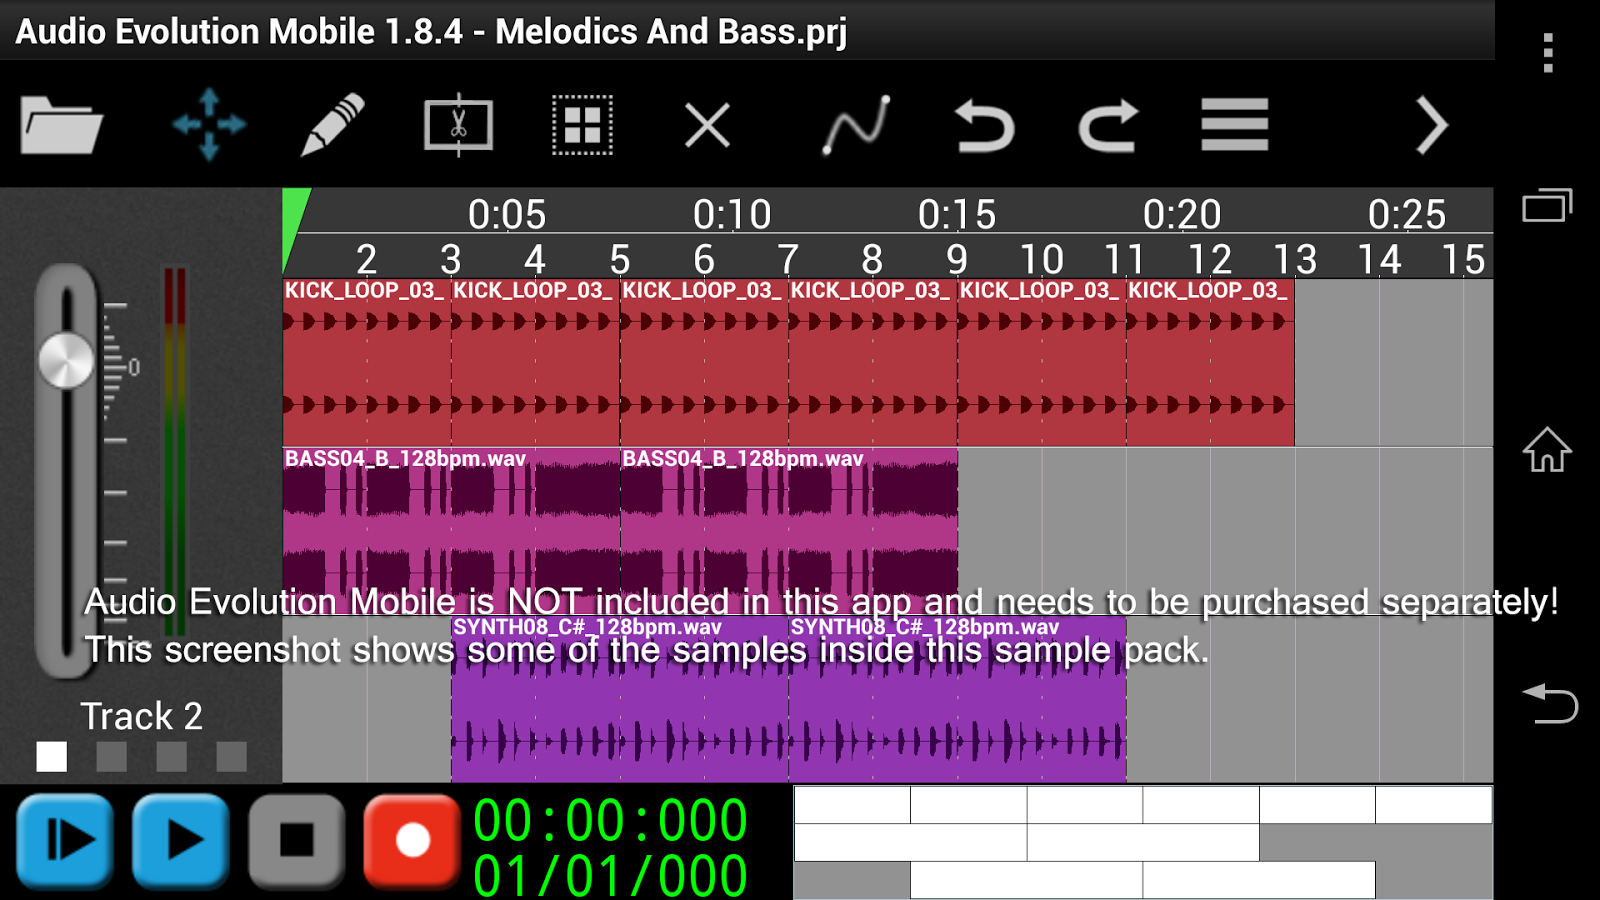 House Melodics & Bass 2 - AEM- screenshot